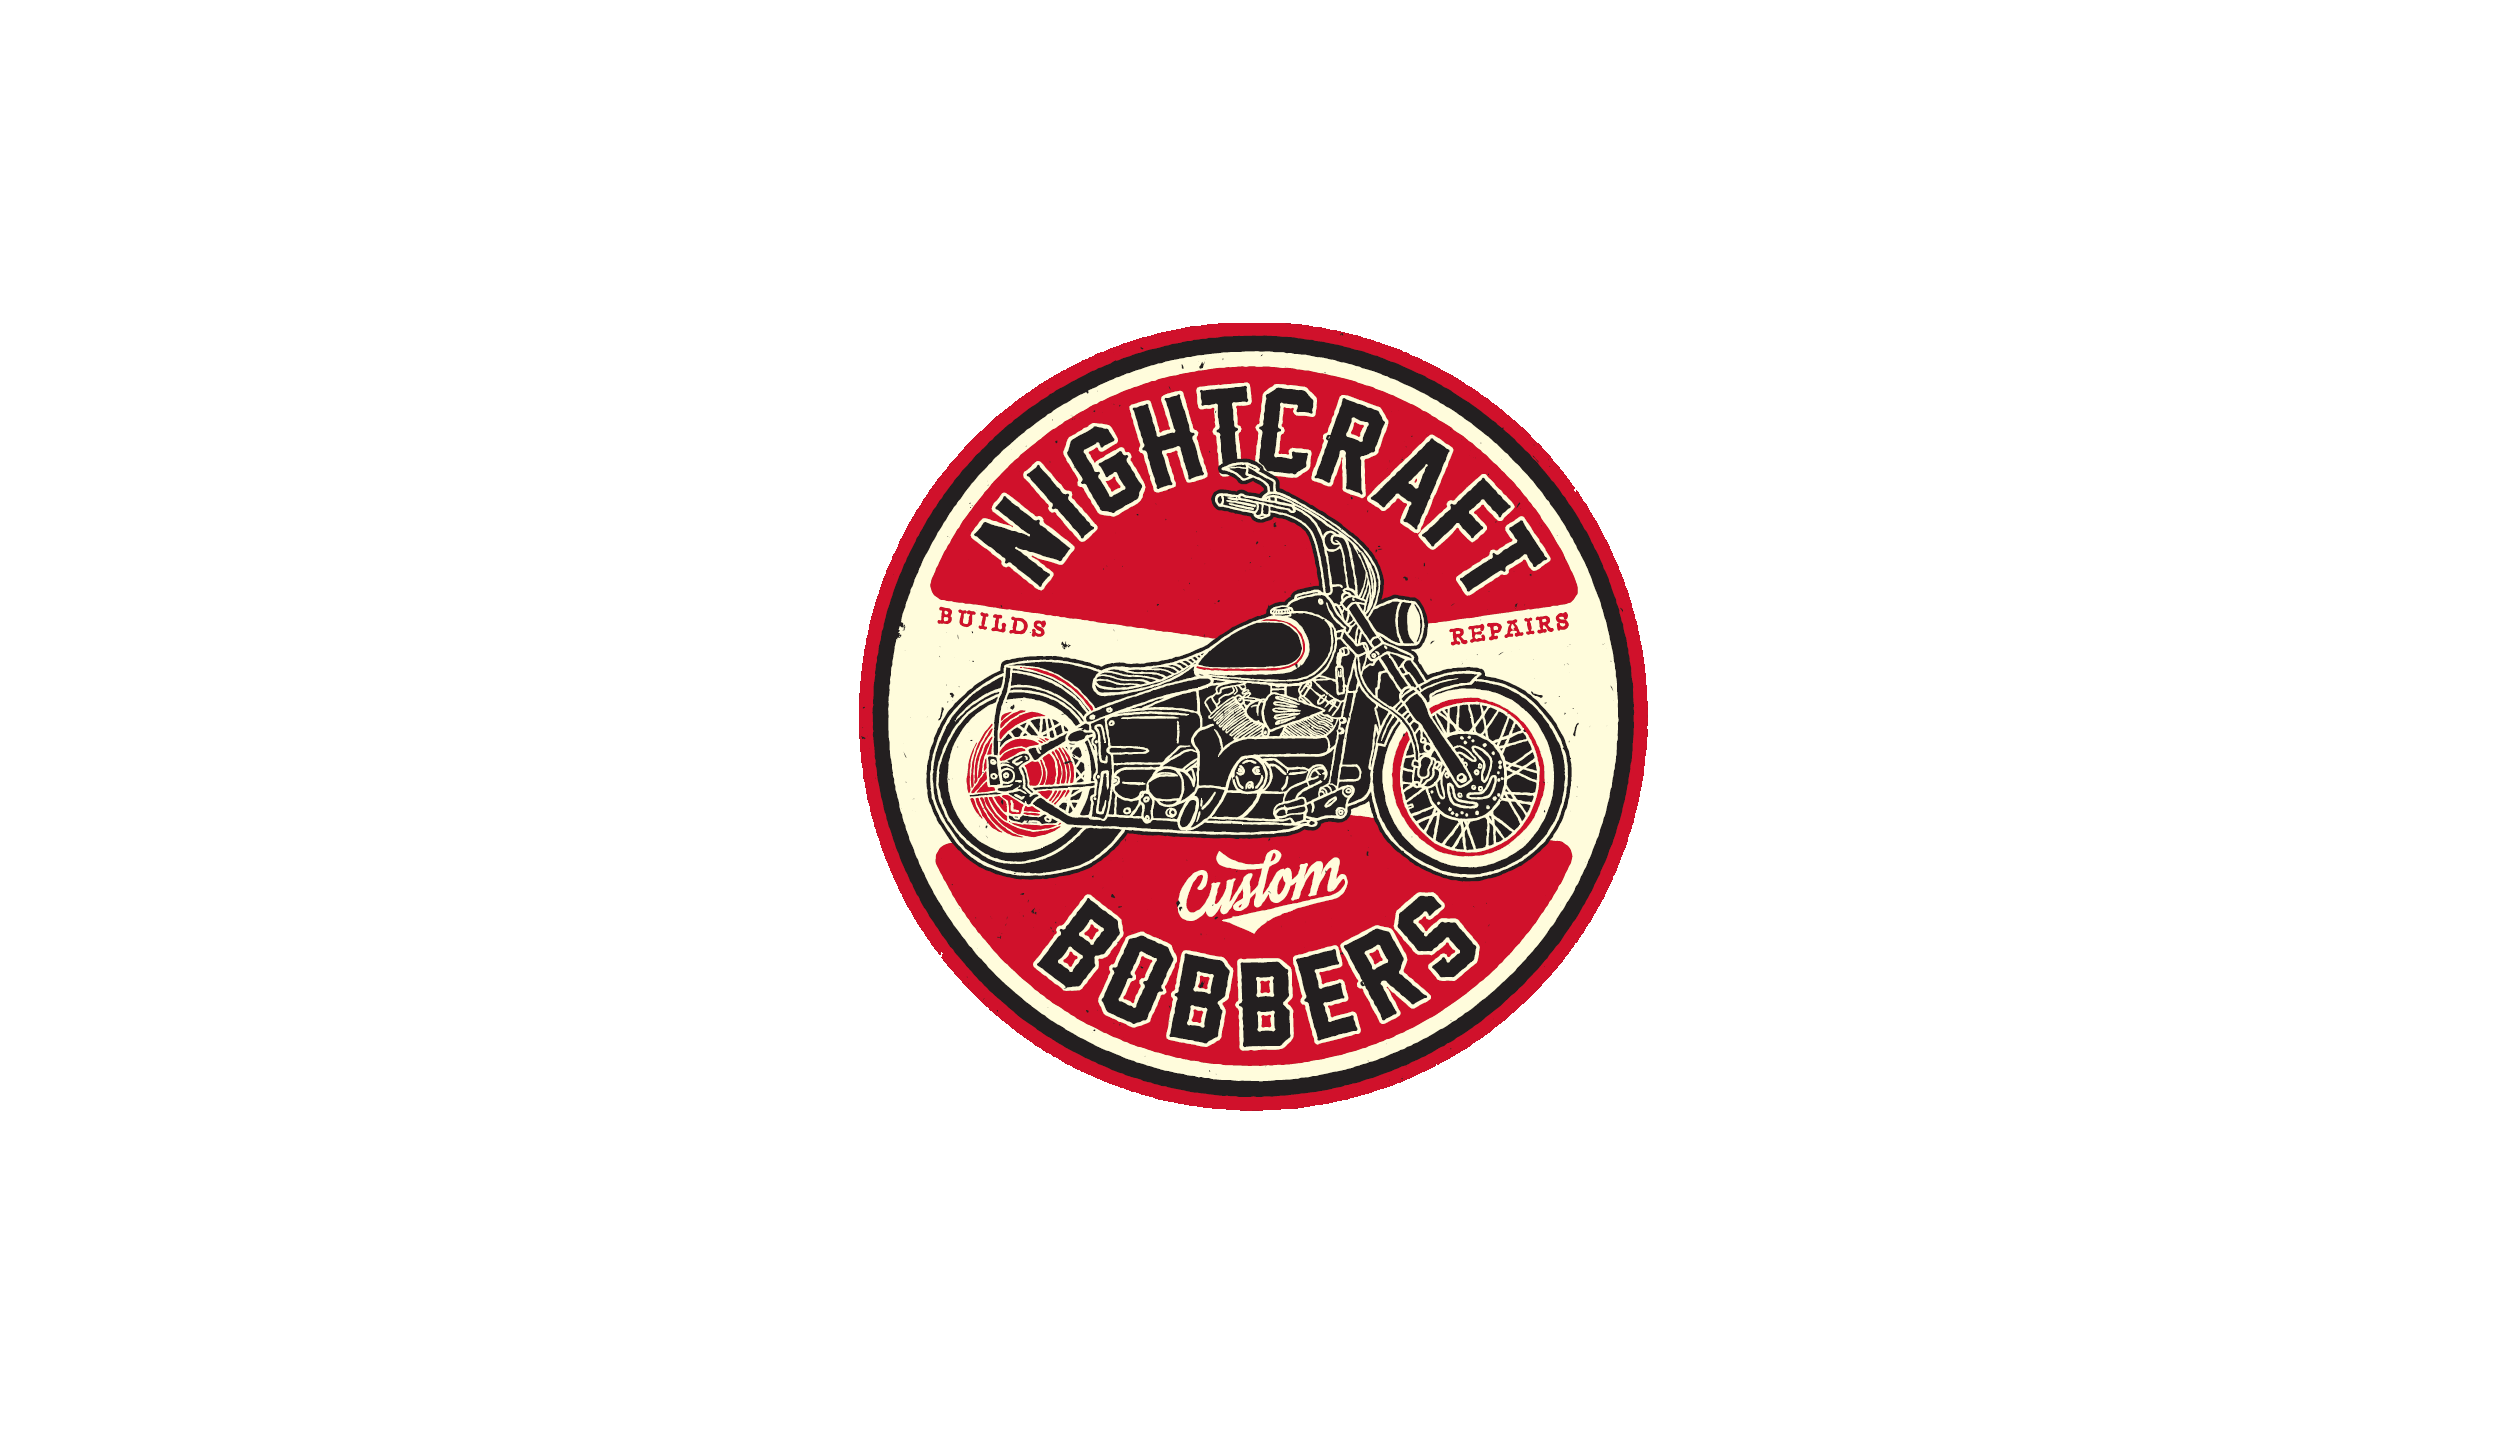 nightcraftbobbers bikes available with LAMS bike finance